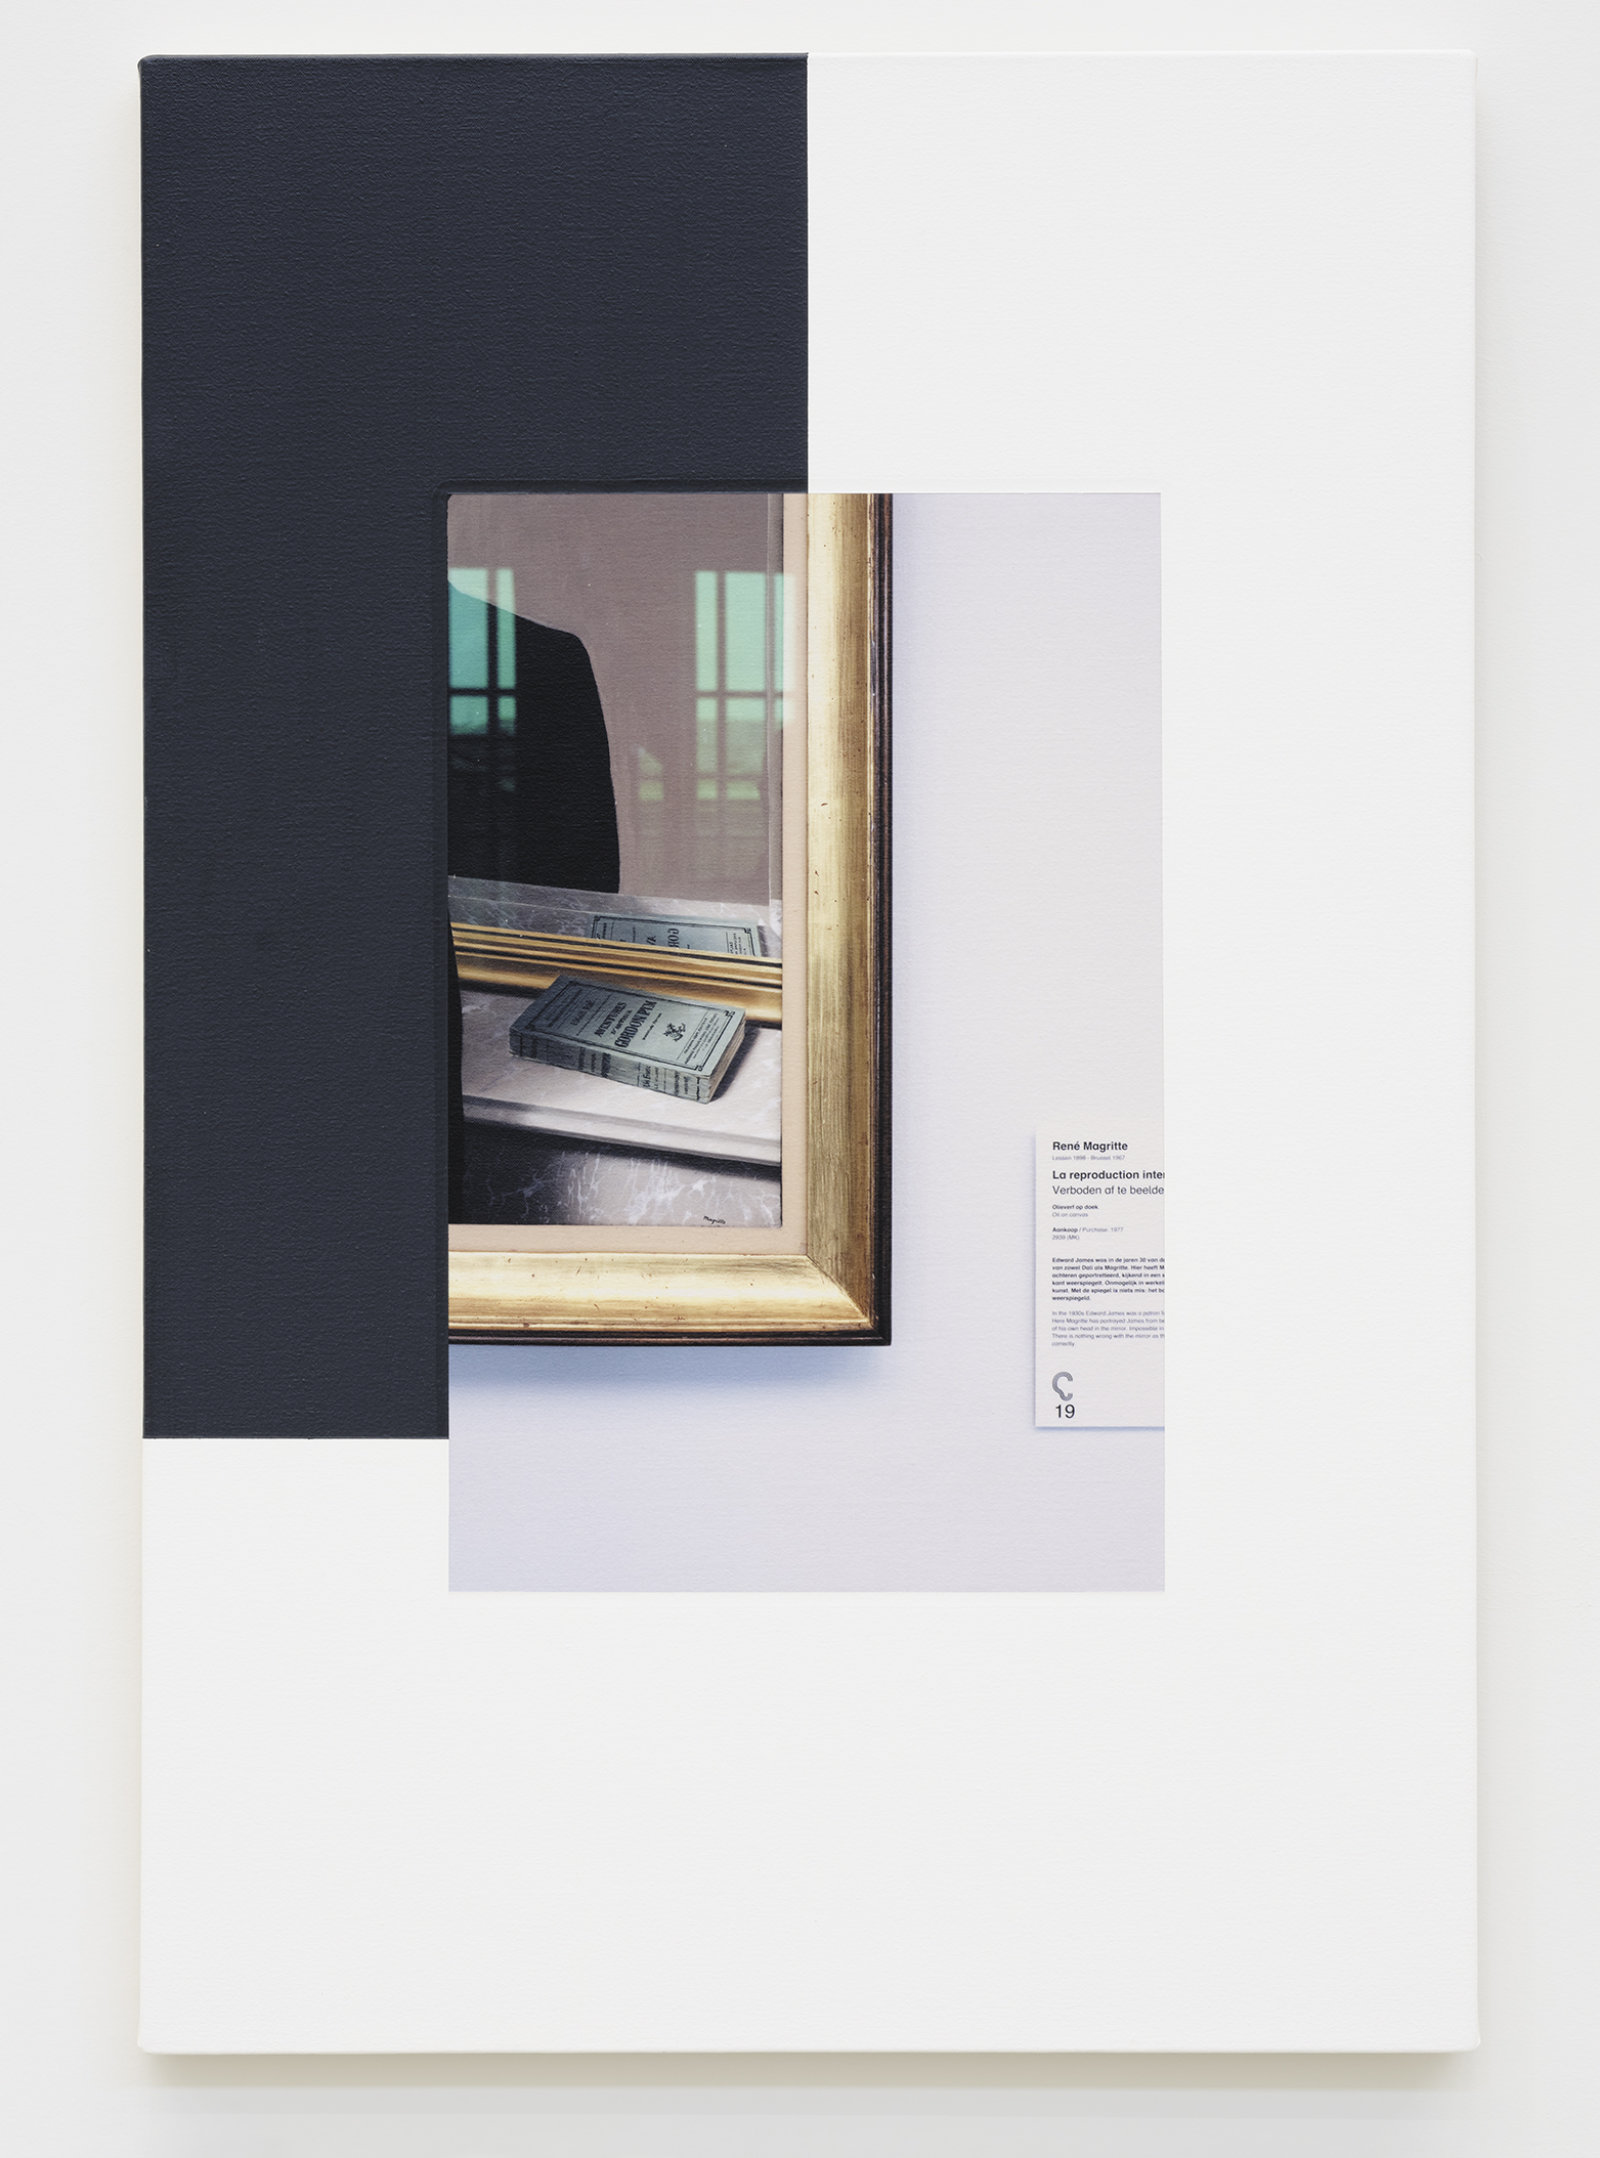 Ian Wallace, Abstract Composition (with Magritte), 2011, photolaminate with acrylic on canvas, 36 x 24 in. (91 x 61 cm) by Ian Wallace